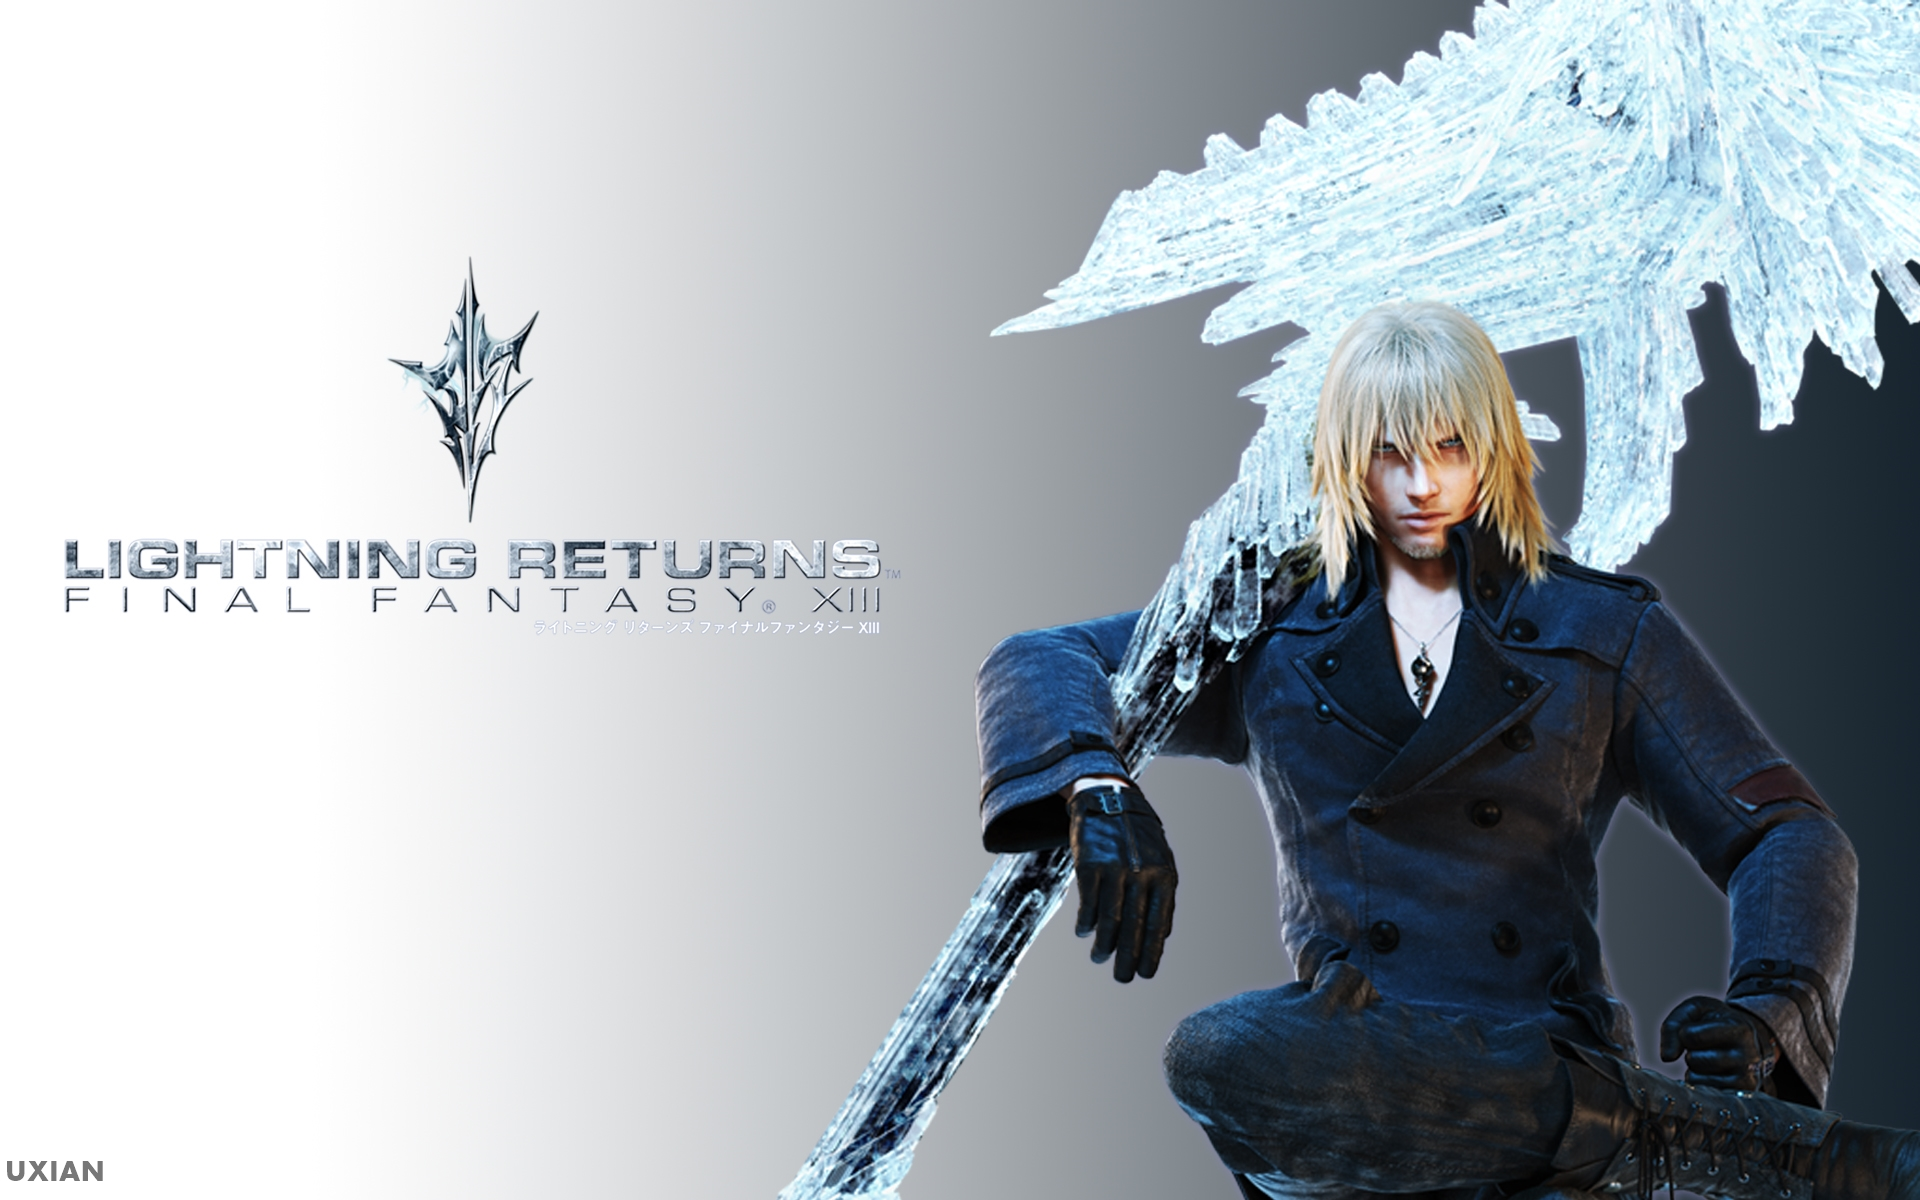 Lightning Returns Final Fantasy Xiii Snow By Uxianxiii On